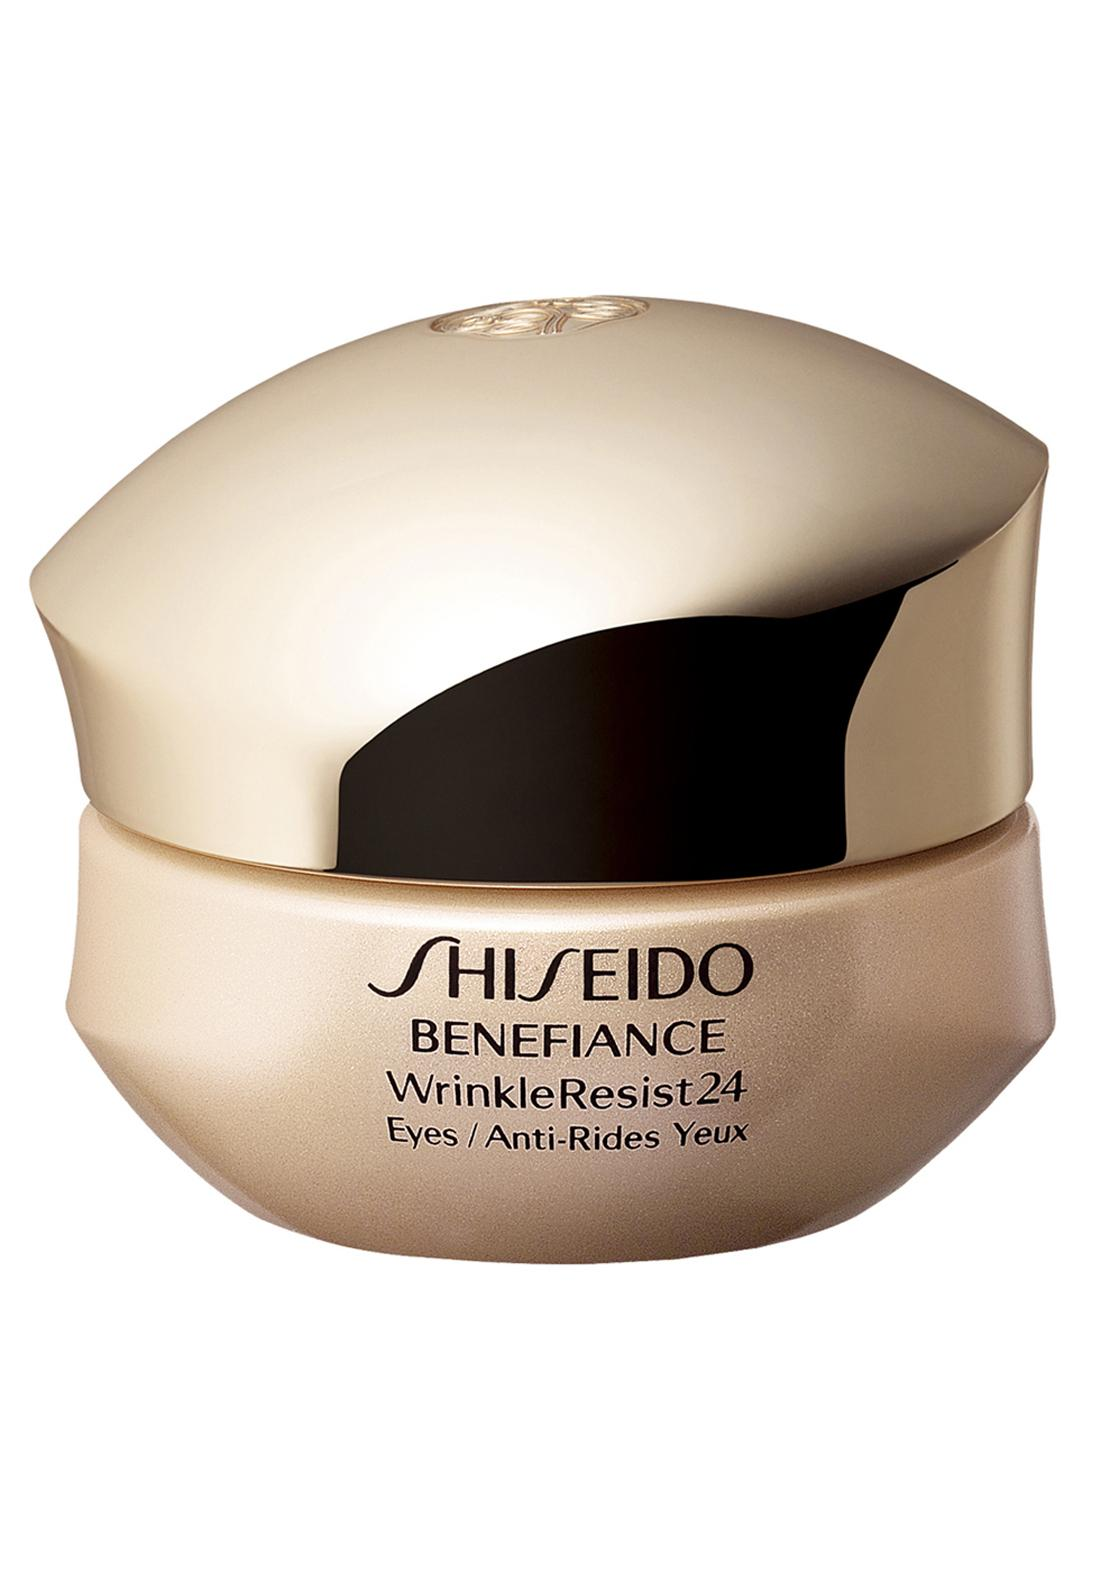 Shiseido Benefiance Wrinkle Resist 24 Intensive Eye Contour Cream (15ml)